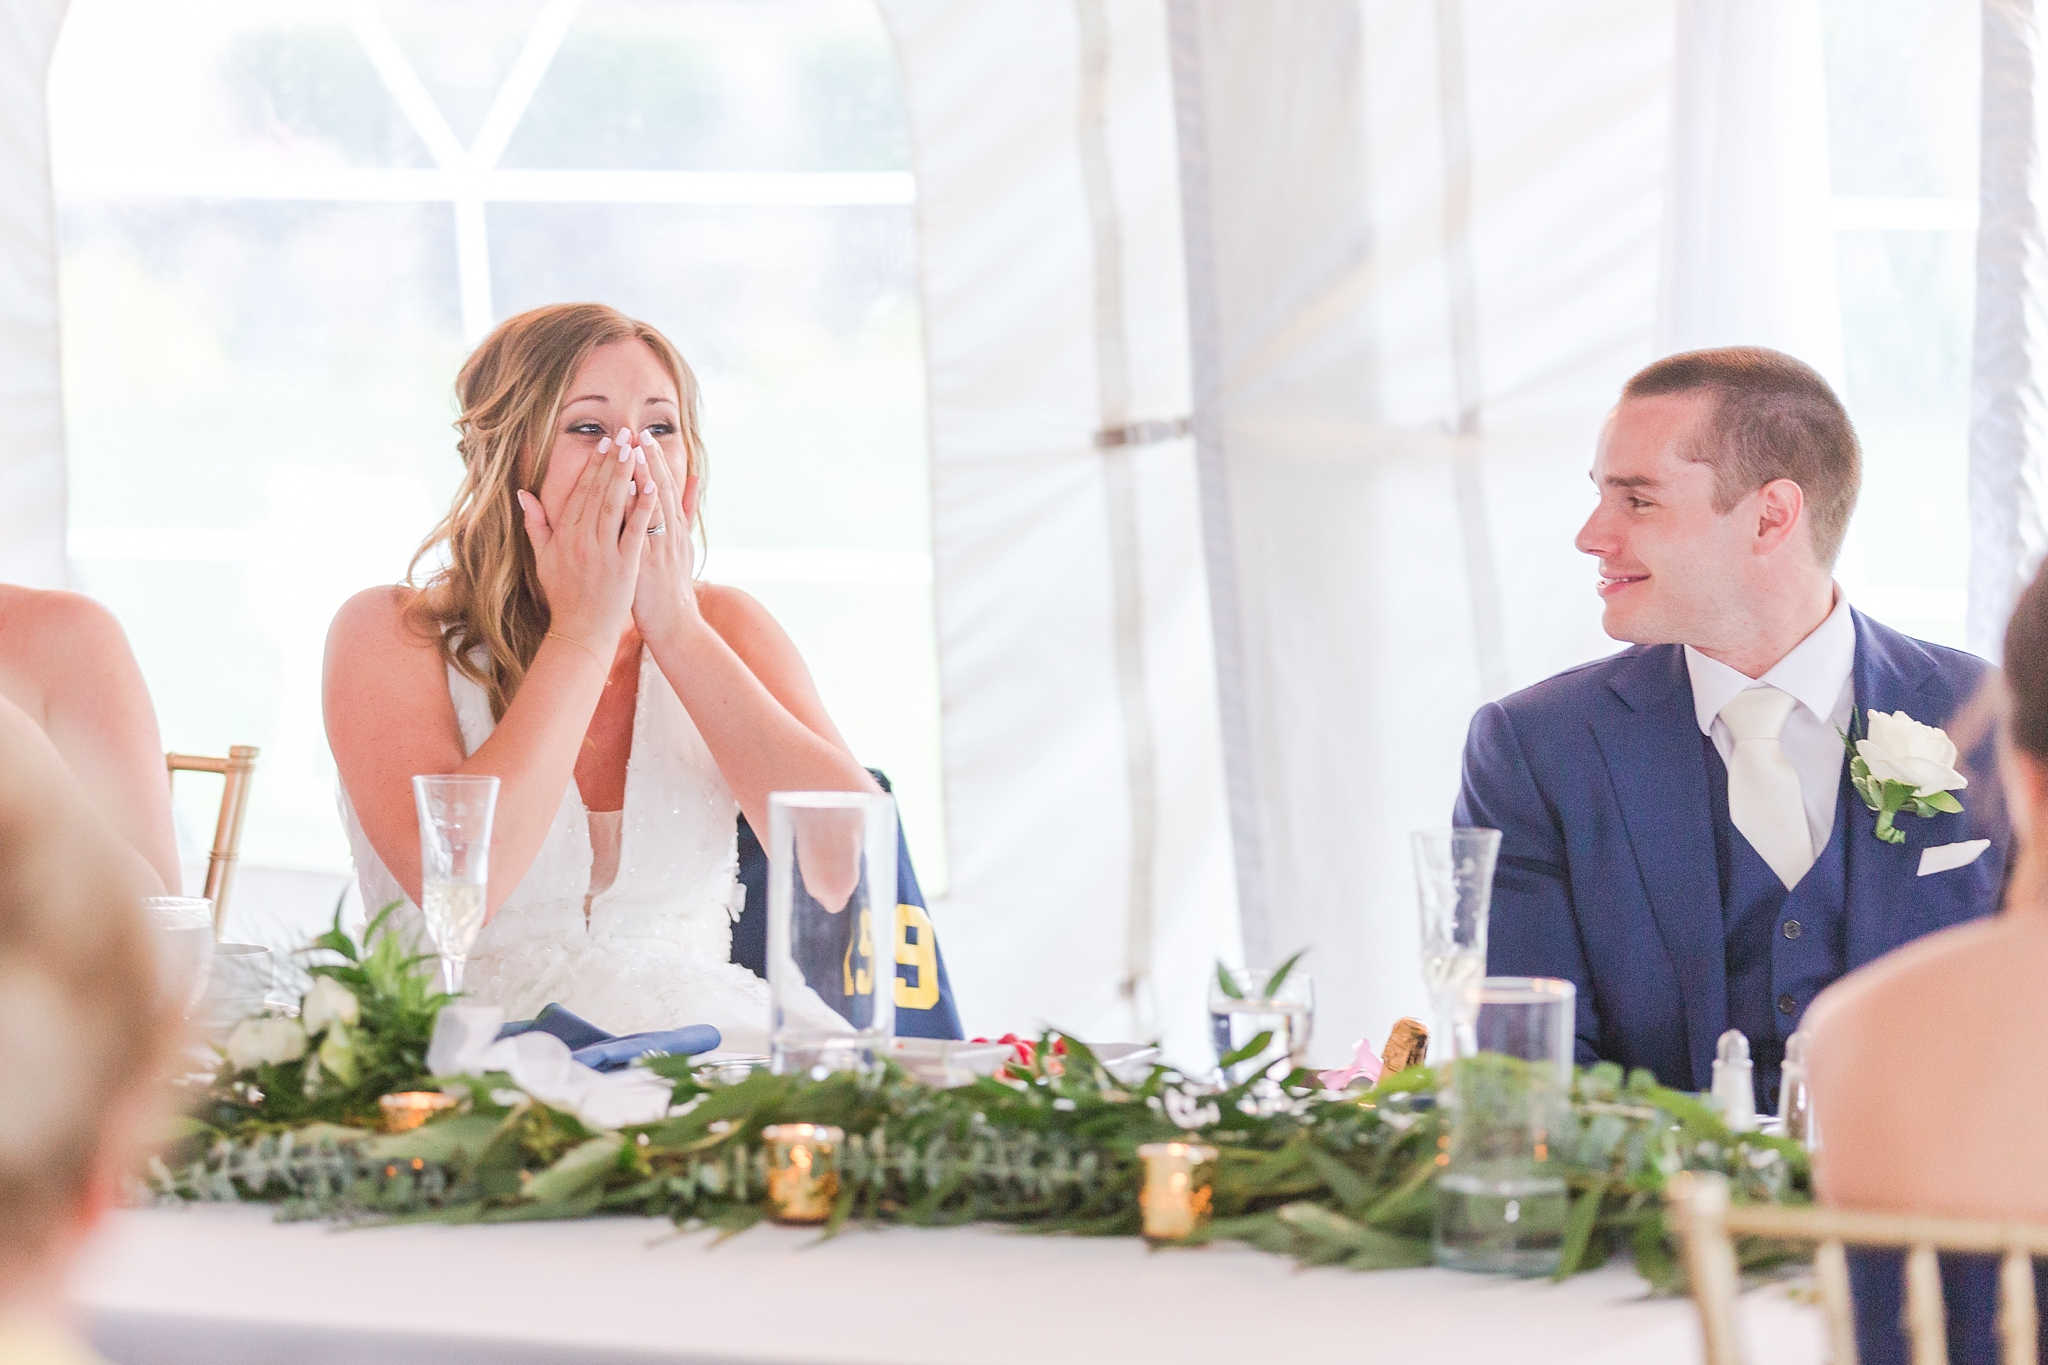 joyful-candid-laid-back-wedding-photos-in-ann-arbor-michigan-and-at-the-eagle-crest-golf-resort-by-courtney-carolyn-photography_0106.jpg